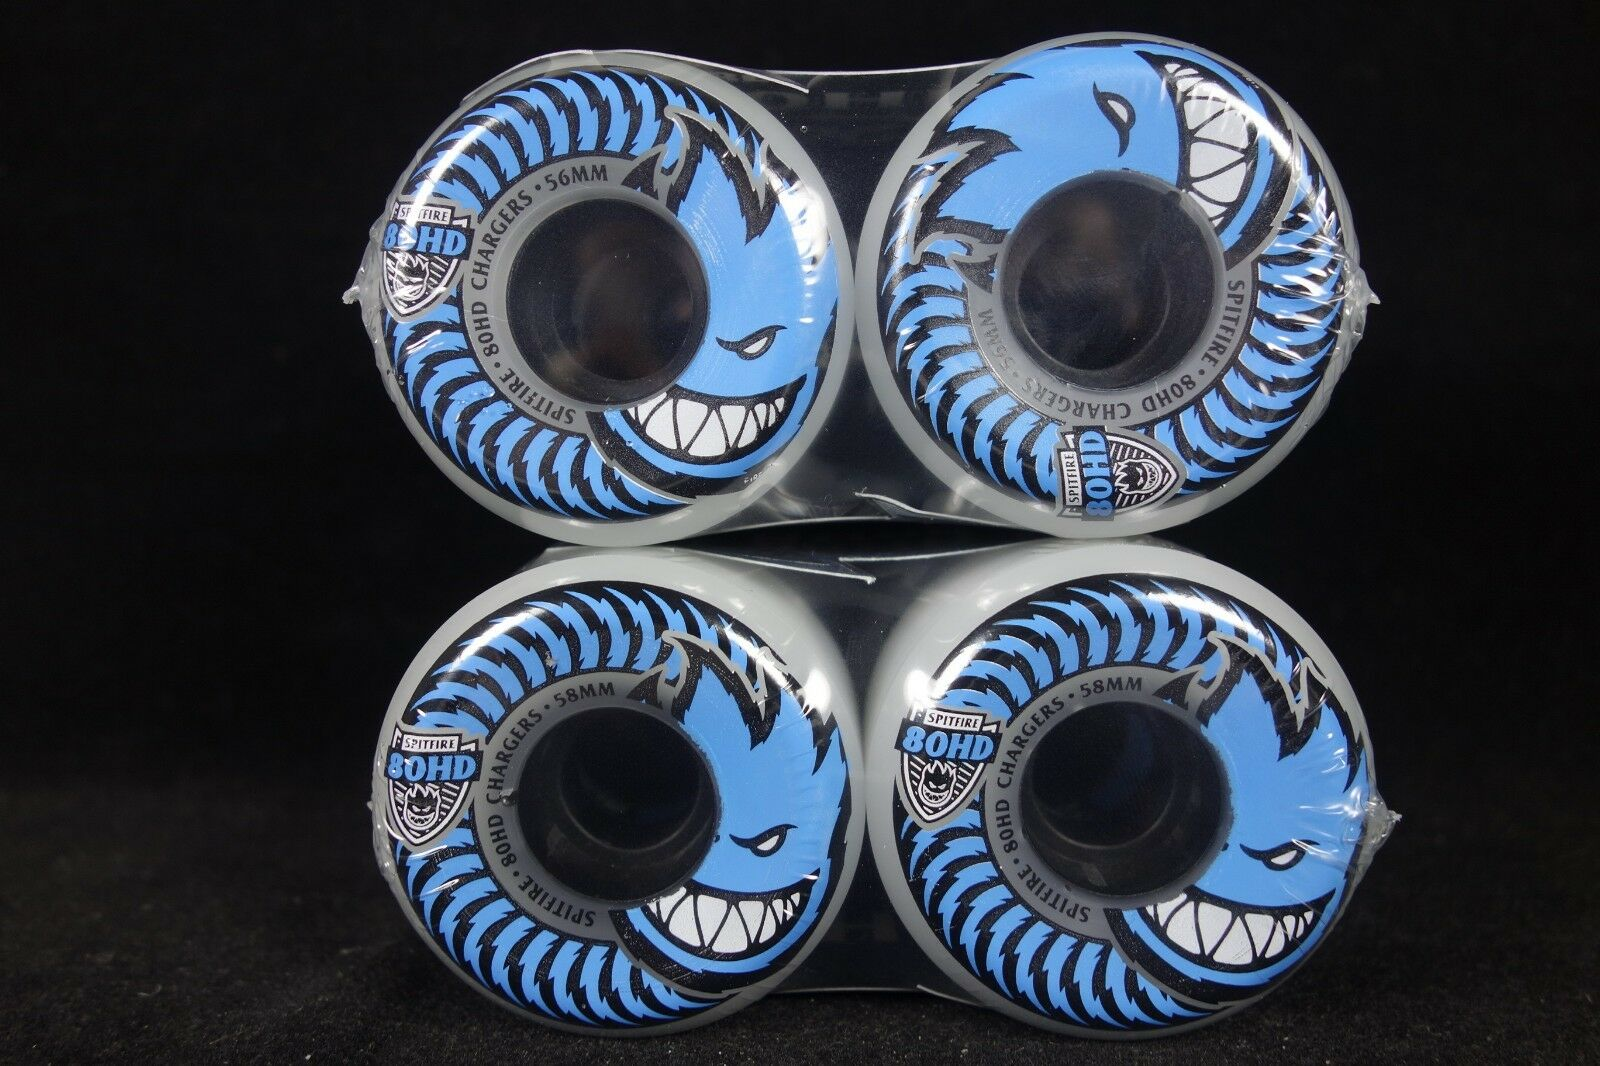 Spitfire S board  Wheels 80HD Chargers Conical All Sizes S boards Terrain  save 50%-75%off